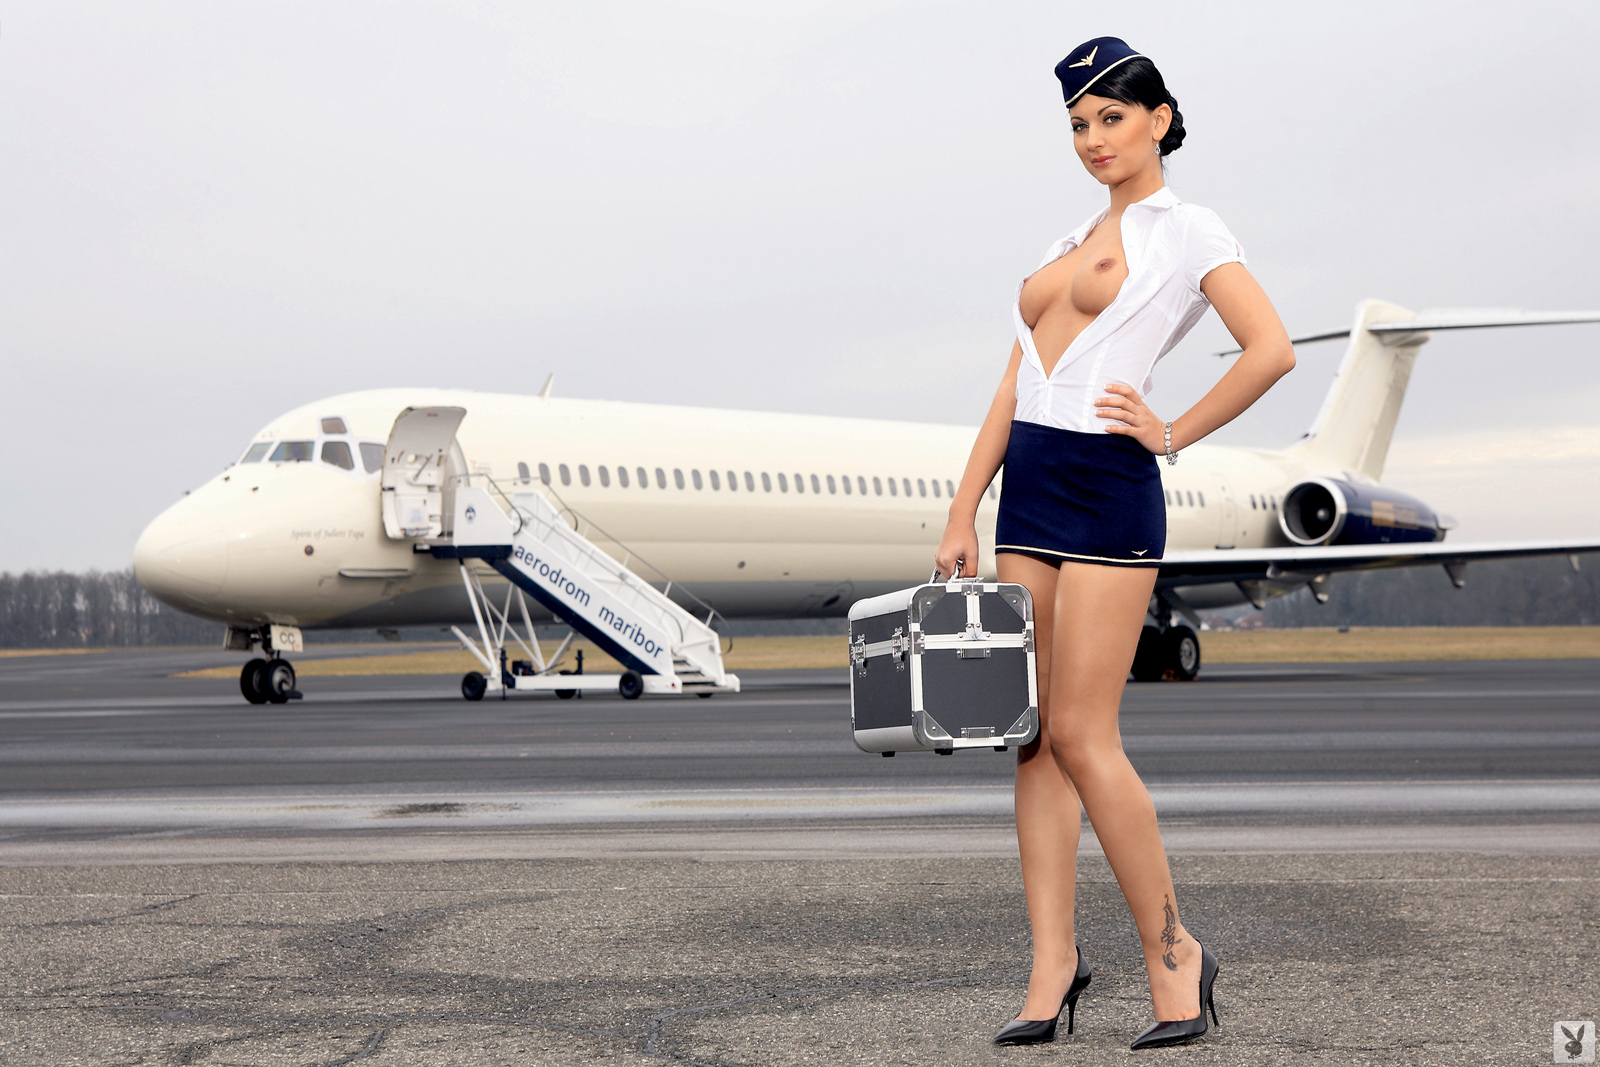 air hostess ass nude